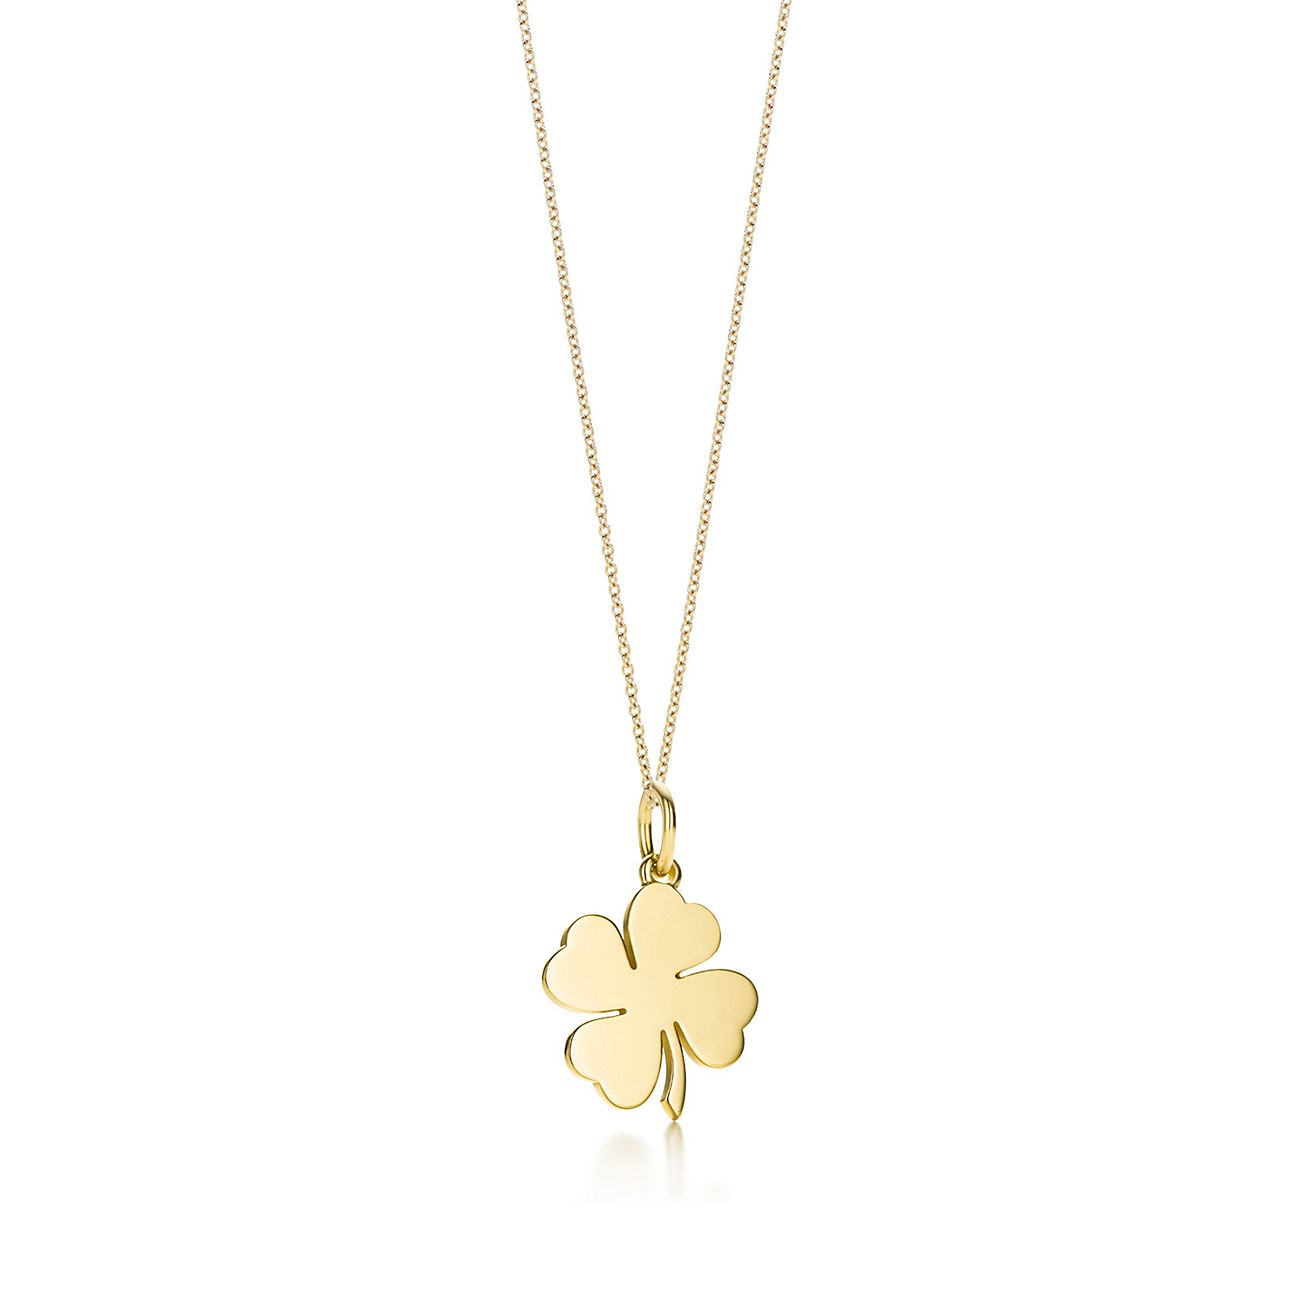 lg academy products apparel necklace large leaf crystals with clover